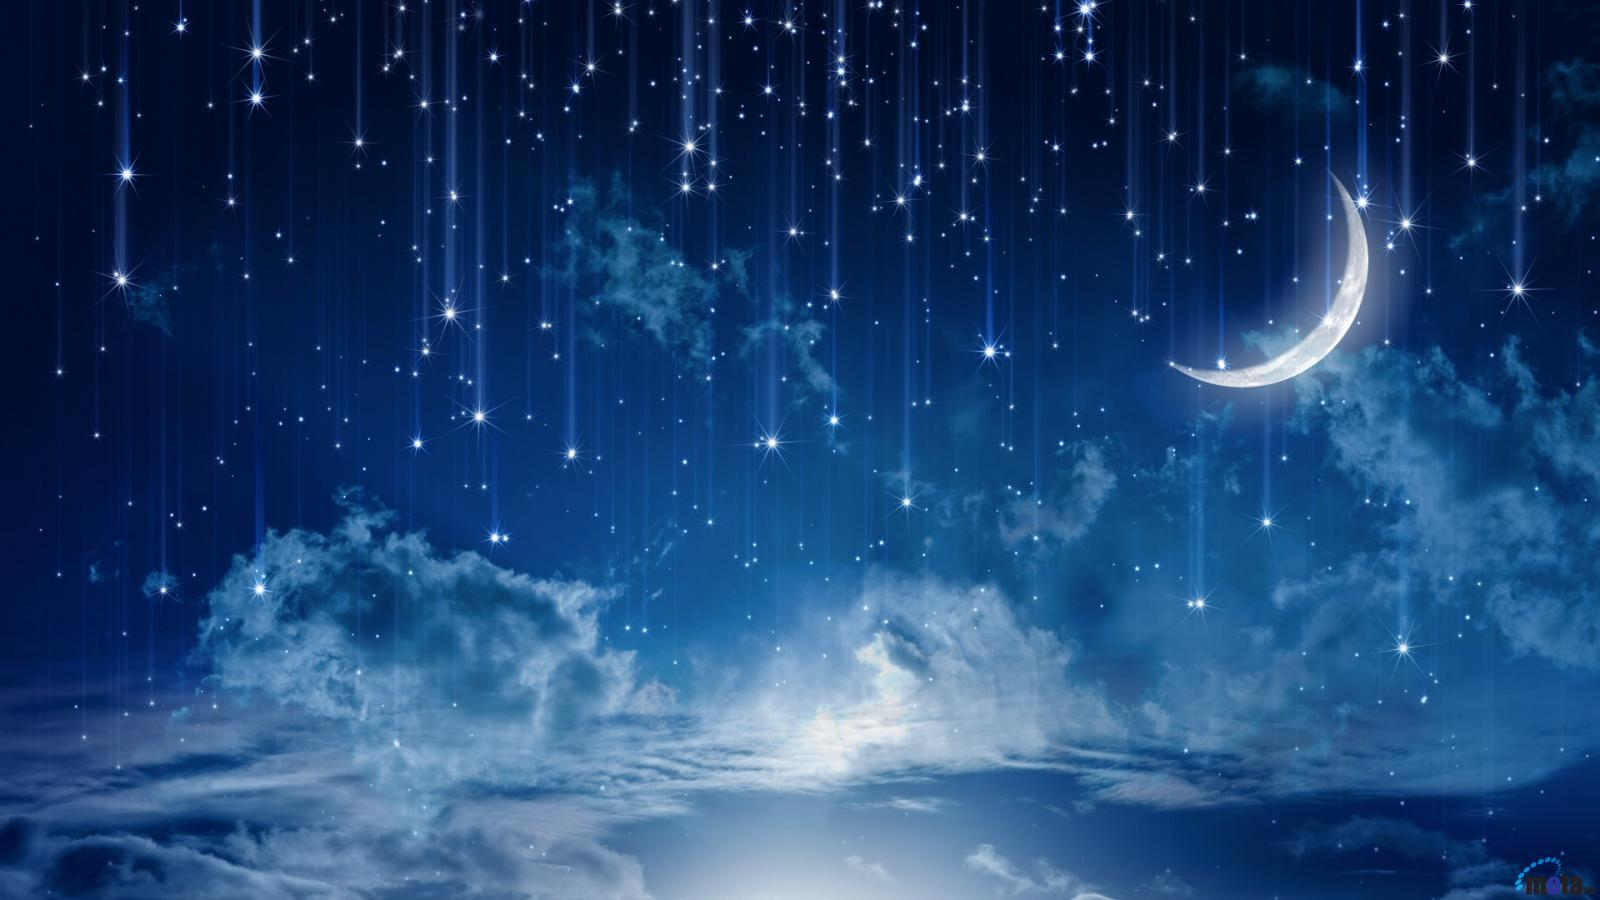 Download Wallpaper Mystical meteor shower 1600 x 900 widescreen 1600x900